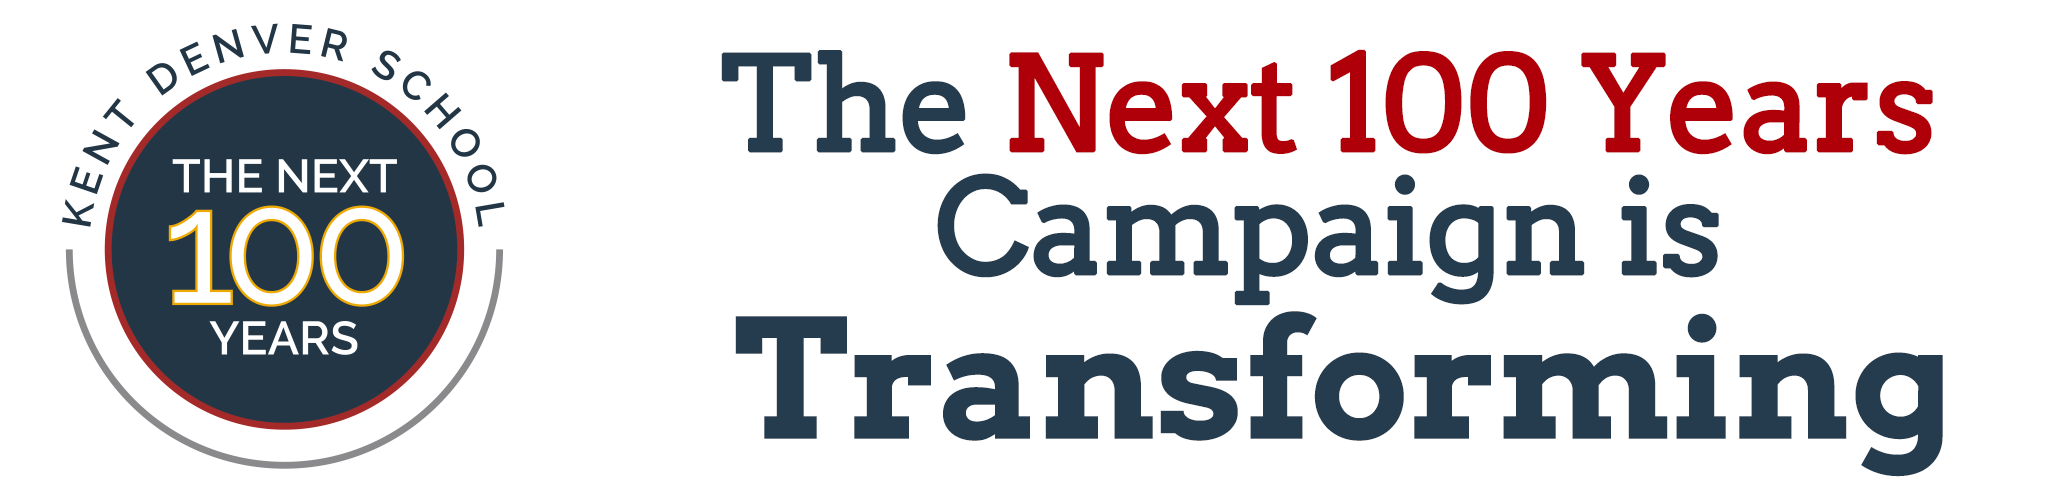 The Next 100 Years Campaign Is Transforming